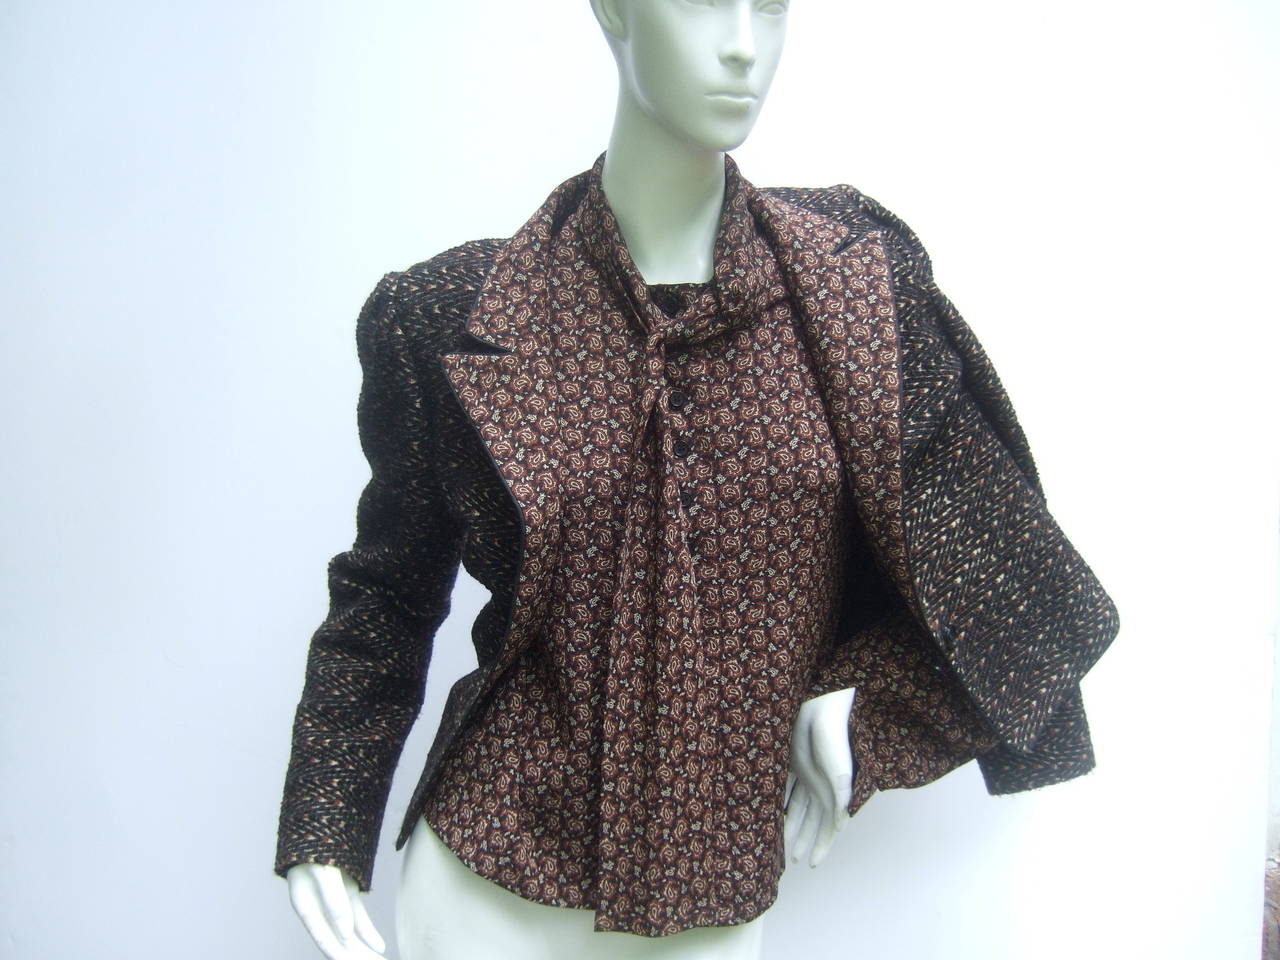 Lanvin Couture Paris Wool Jacket & Paisley Blouse Ensemble c 1980s 7